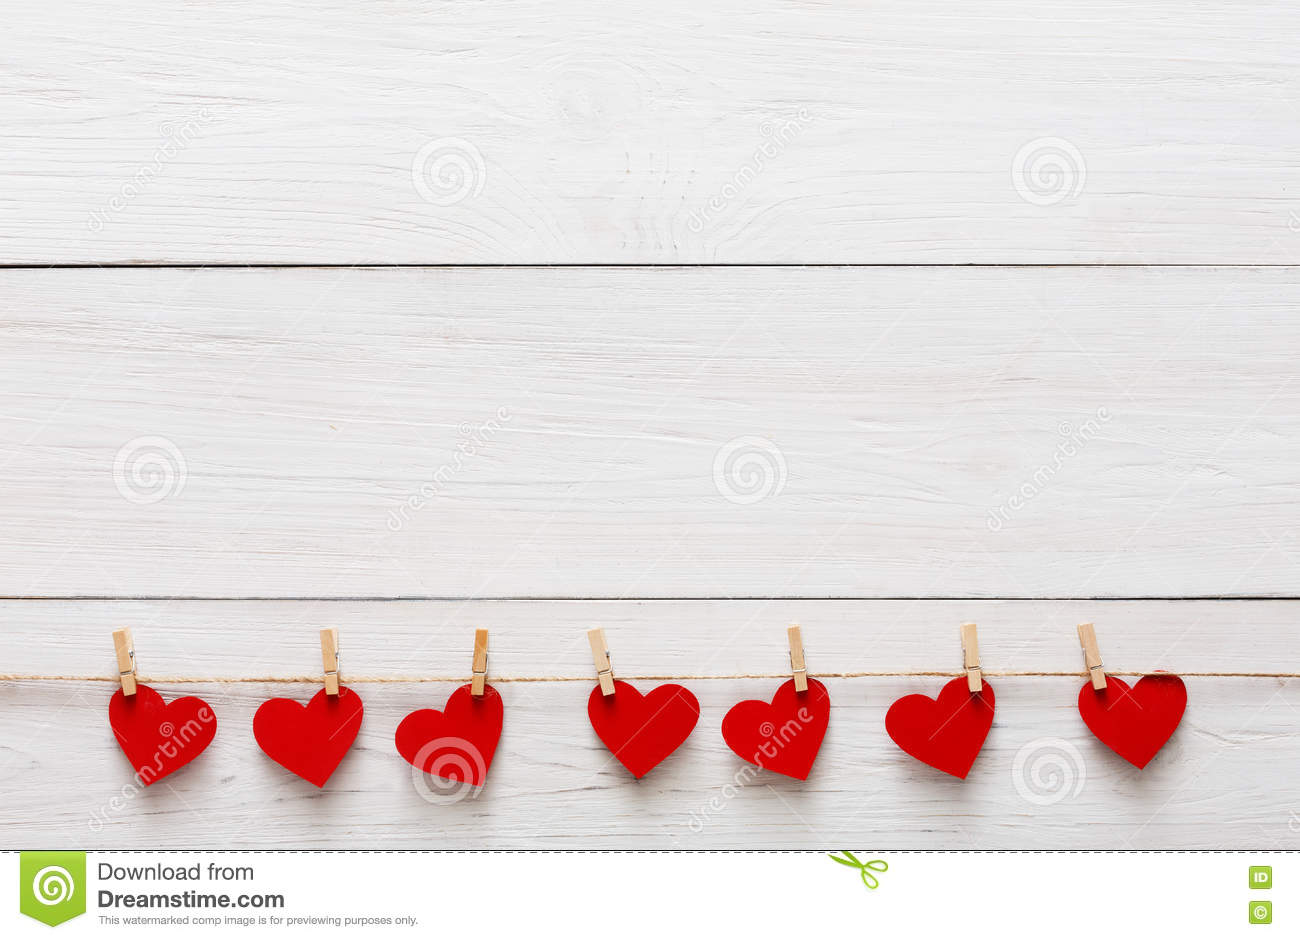 Valentine Background With Red Paper Hearts Row Border On Clothespins White Rustic Wood Planks Happy Lovers Day Card Mockup Copy Space